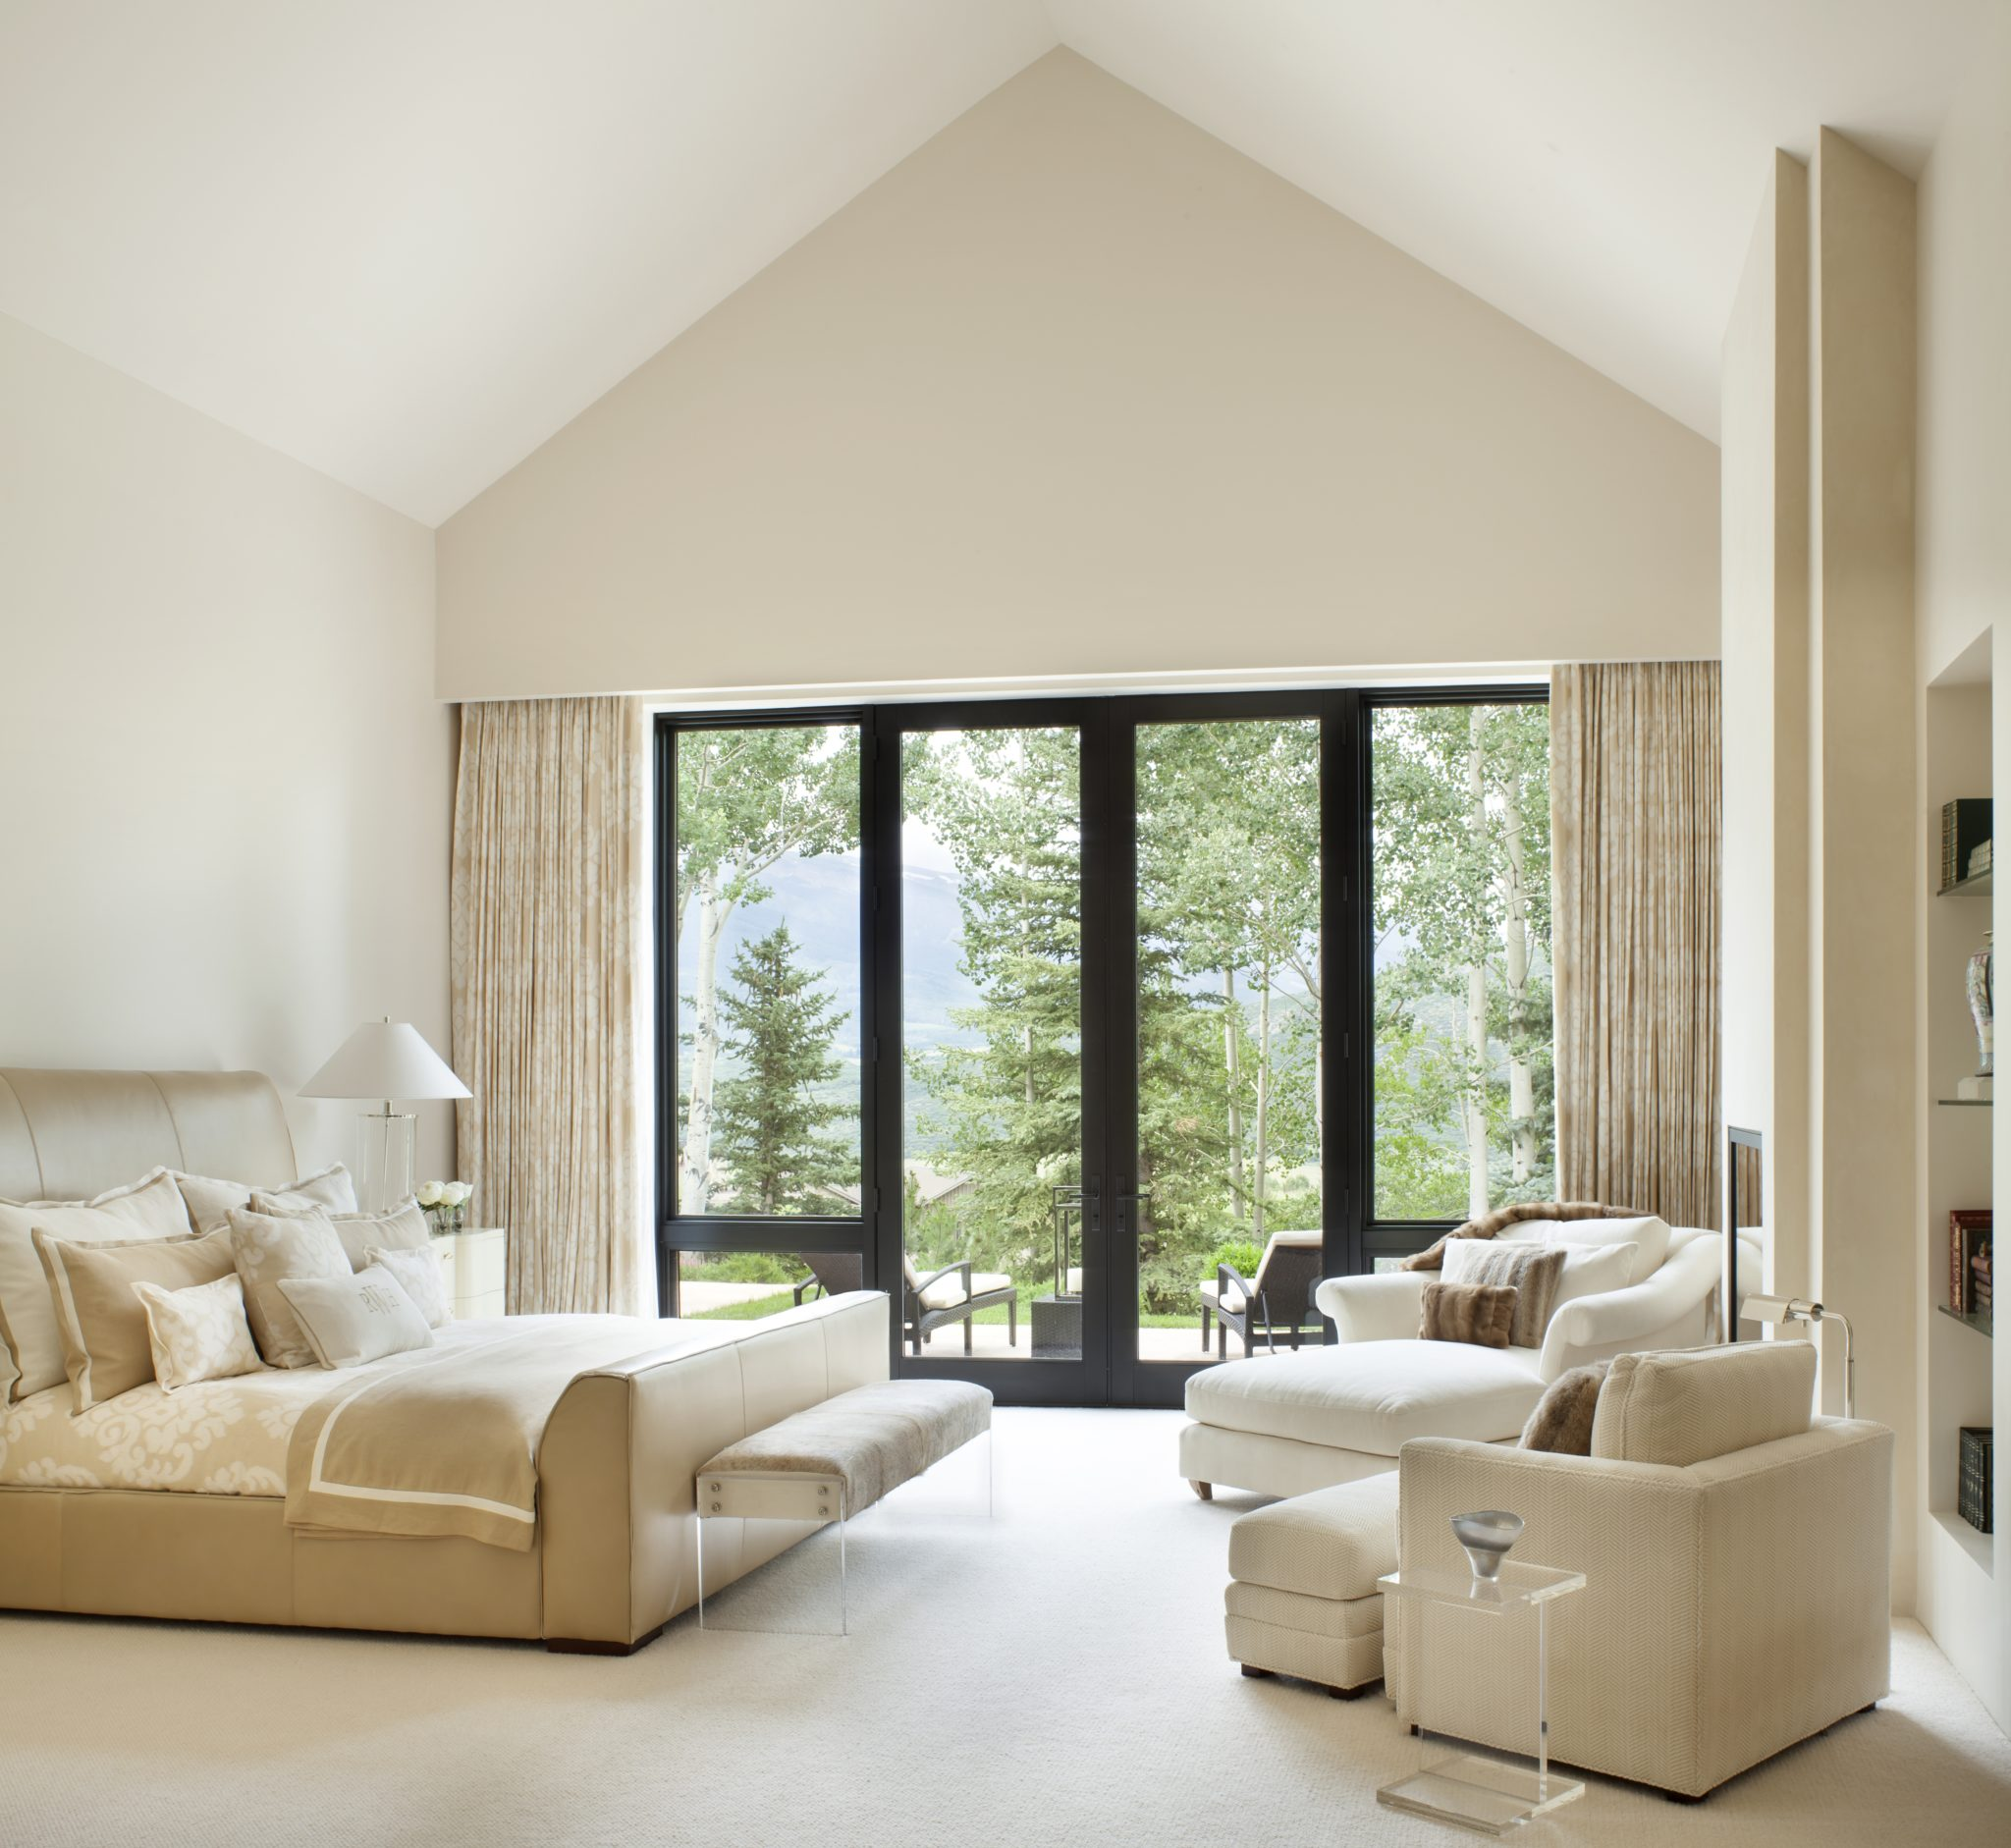 Bold windows and tall ceilings complete this master bedroom by Brewster McLeod Architects